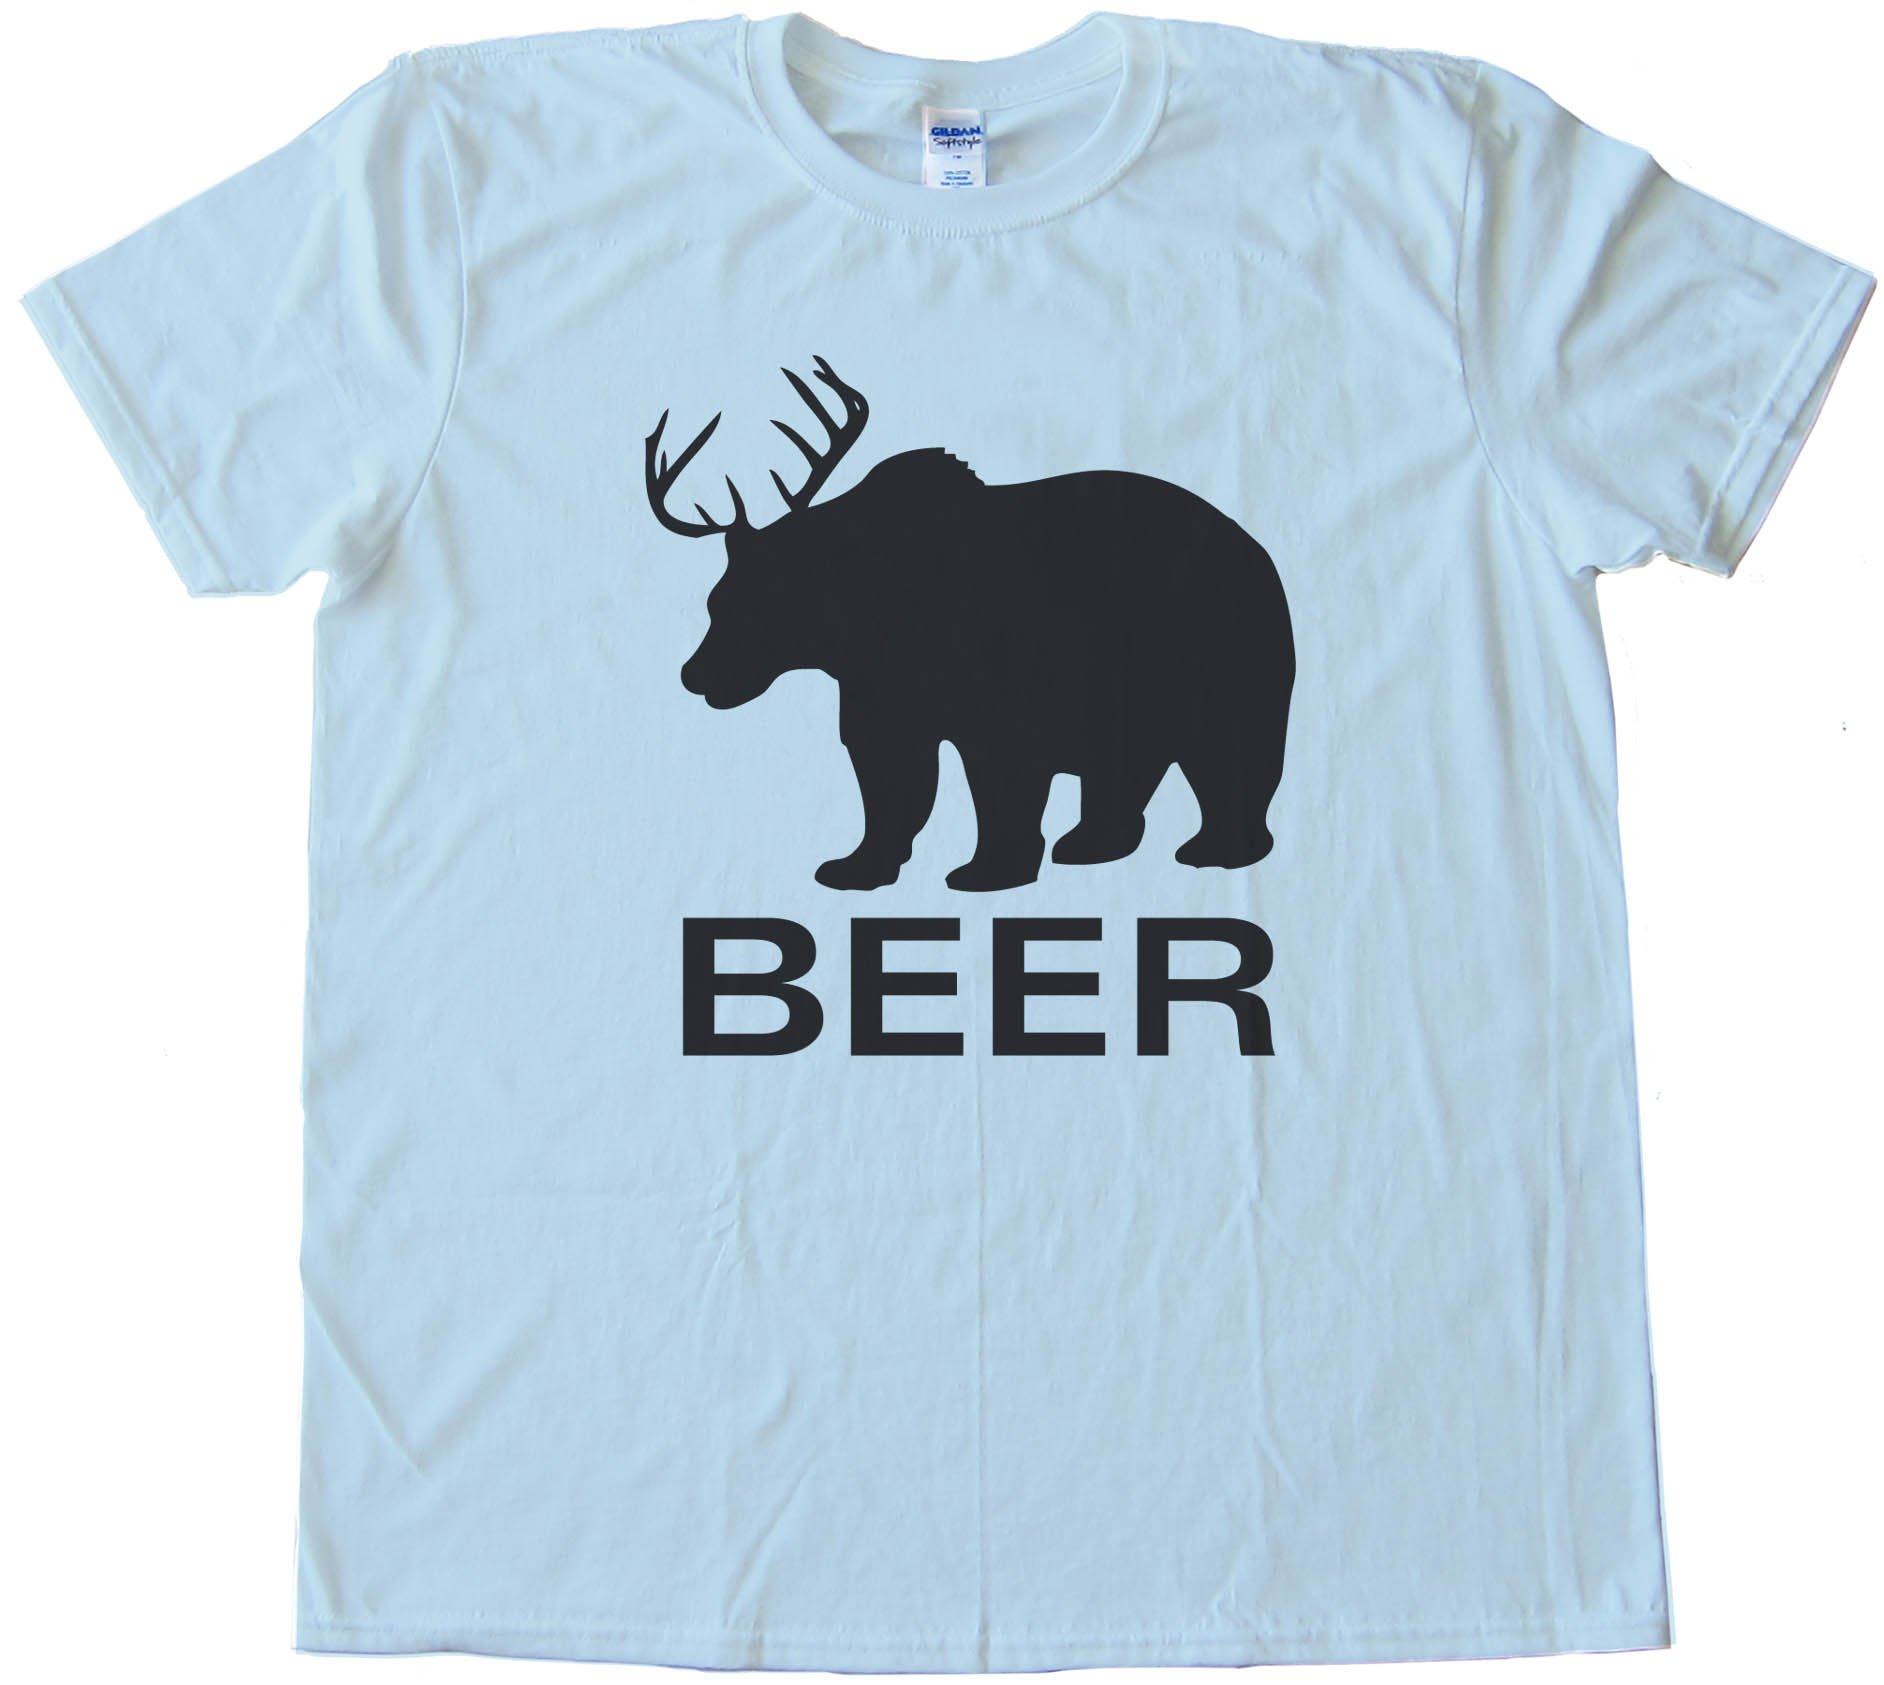 Bear Deer Beer - Tee Shirt